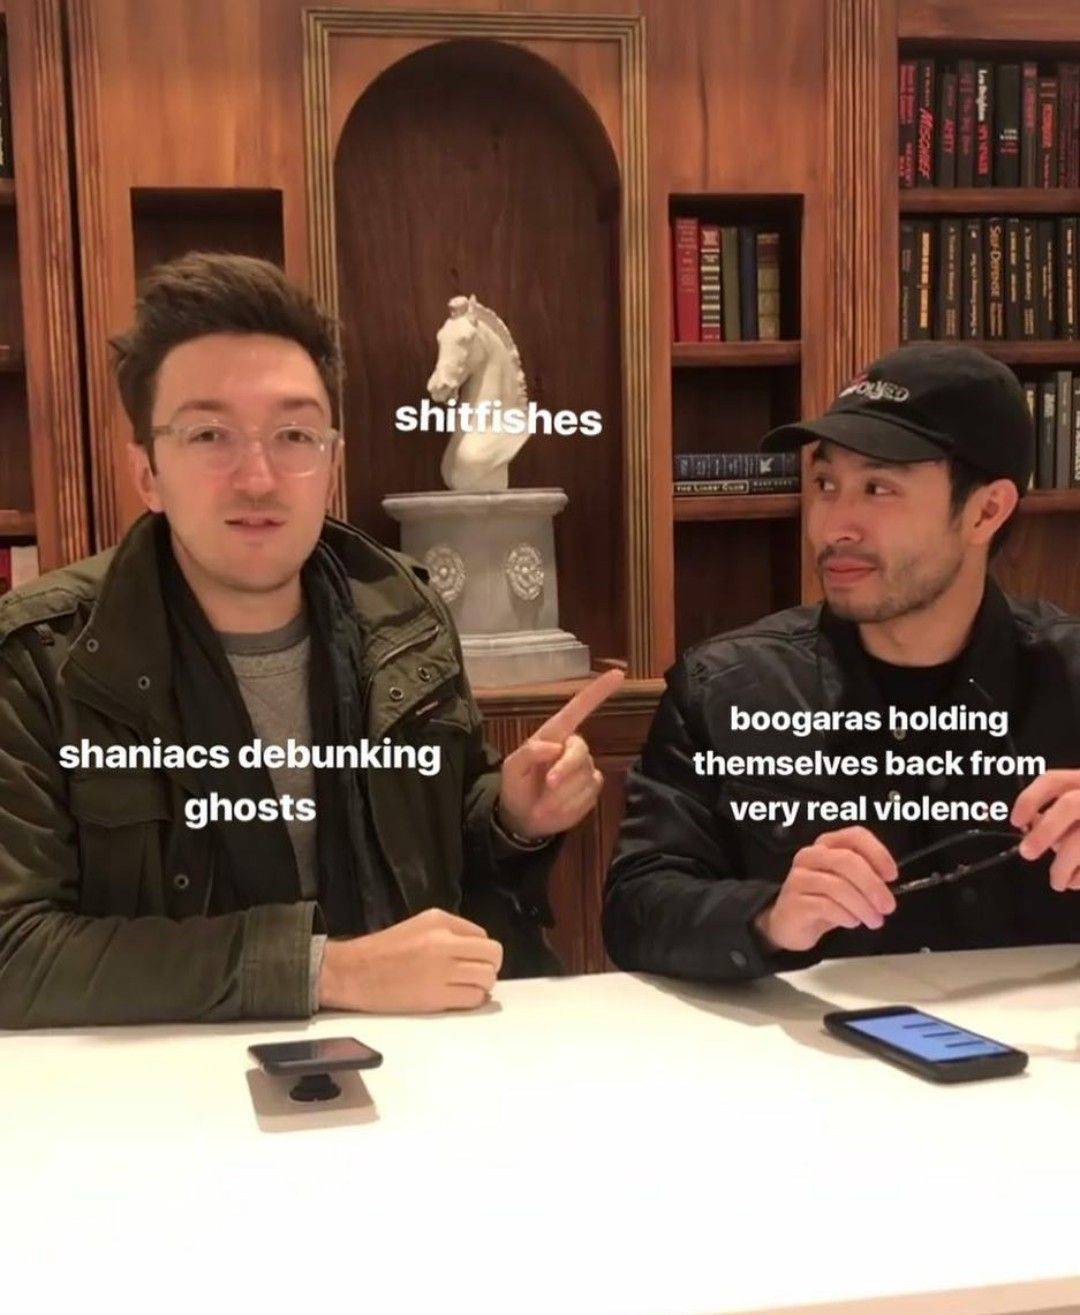 BuzzFeed Unsolved Memes in 2020 (With images) Unsolved